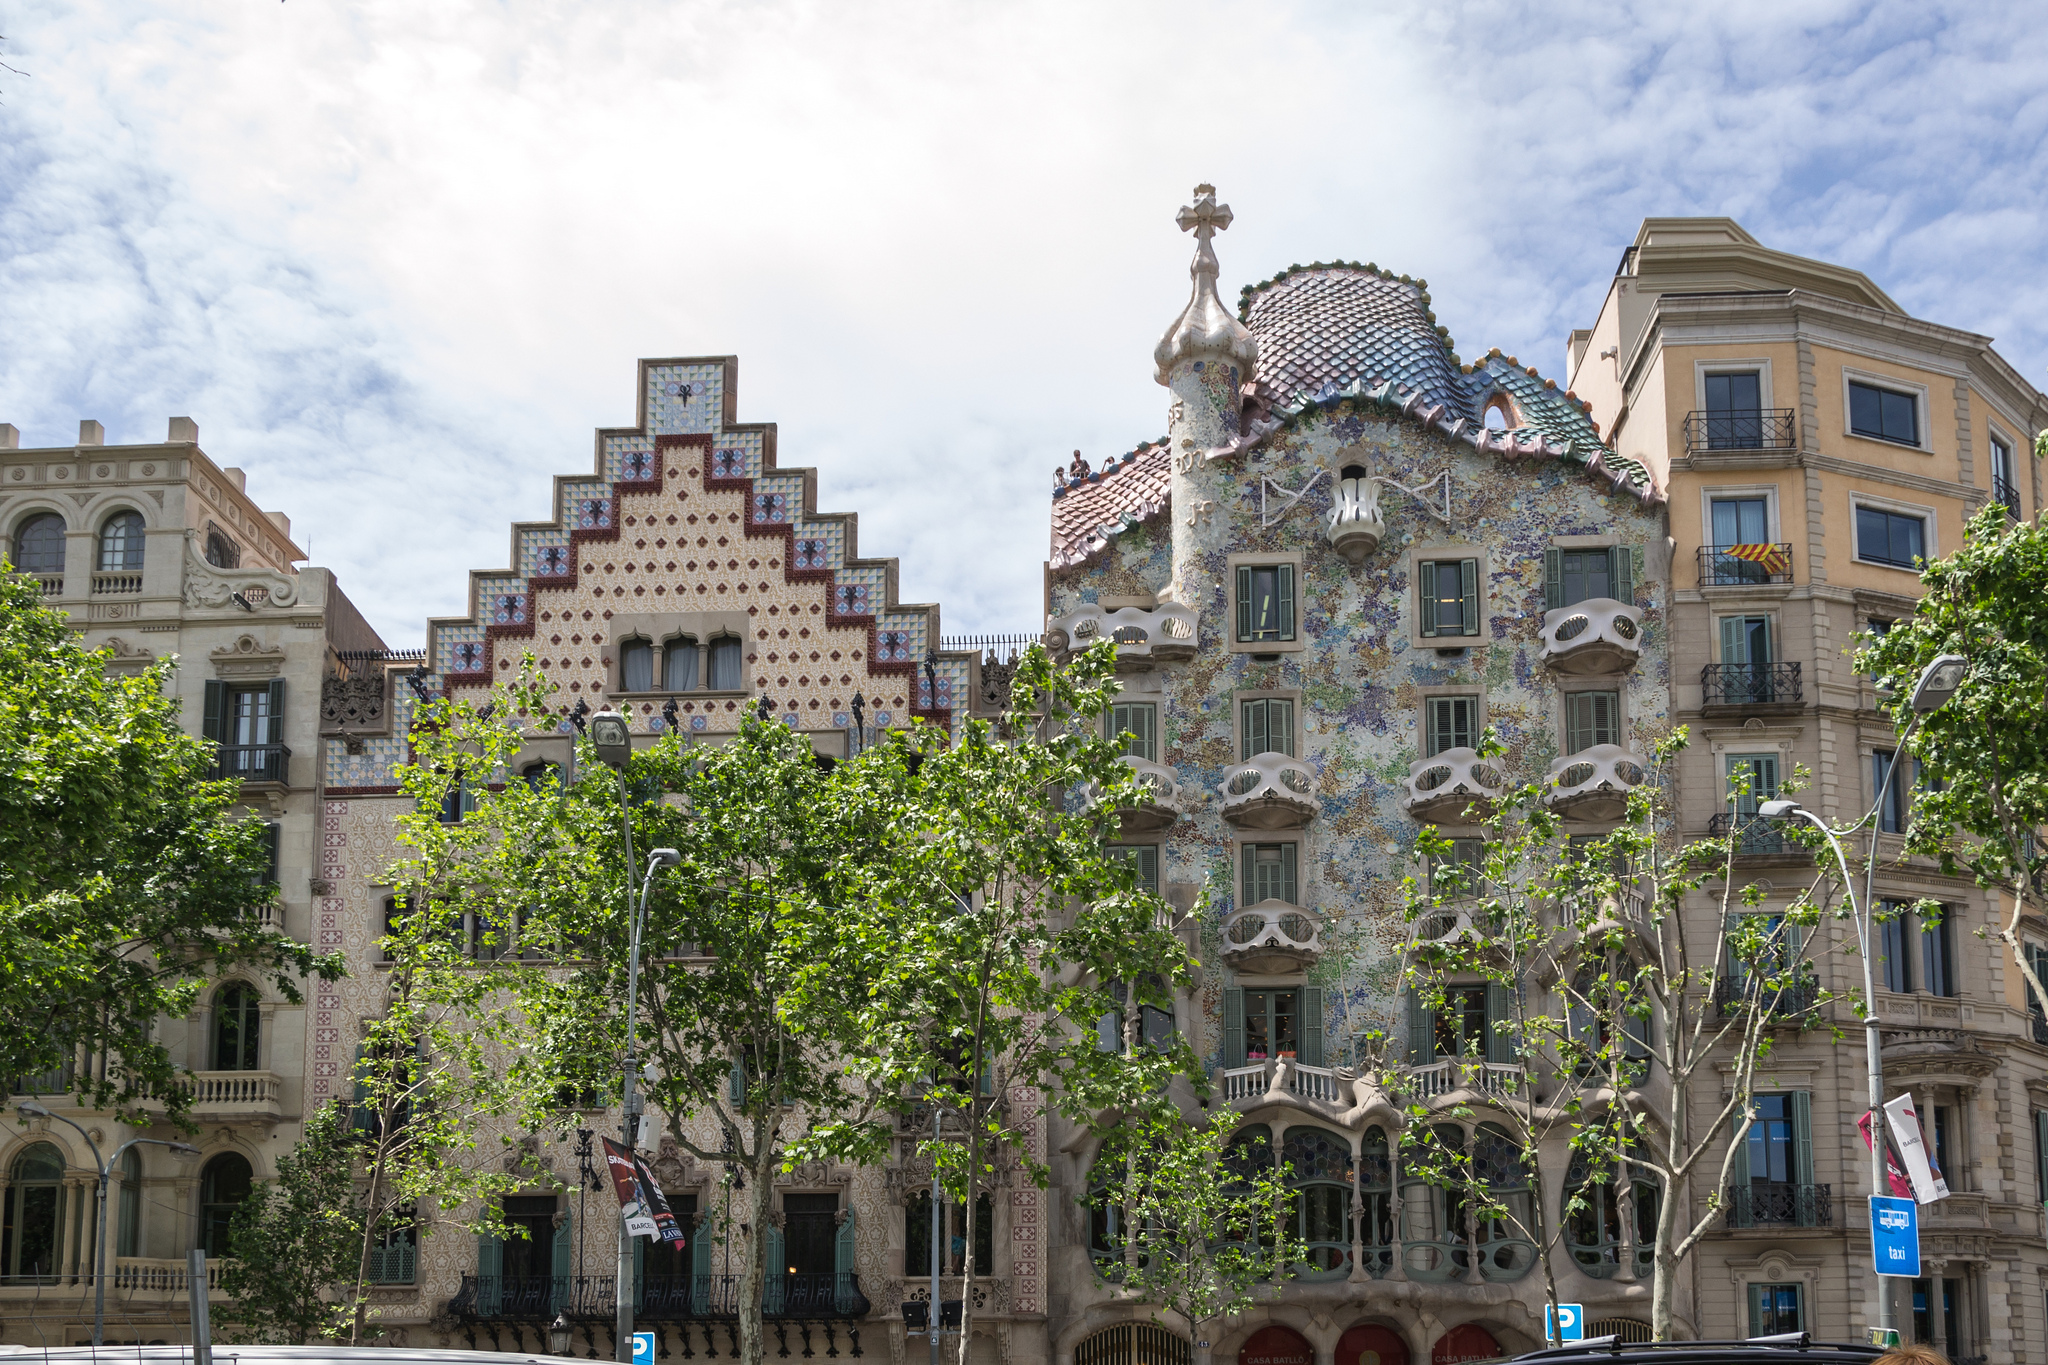 The Casa Batlló © dconvertini